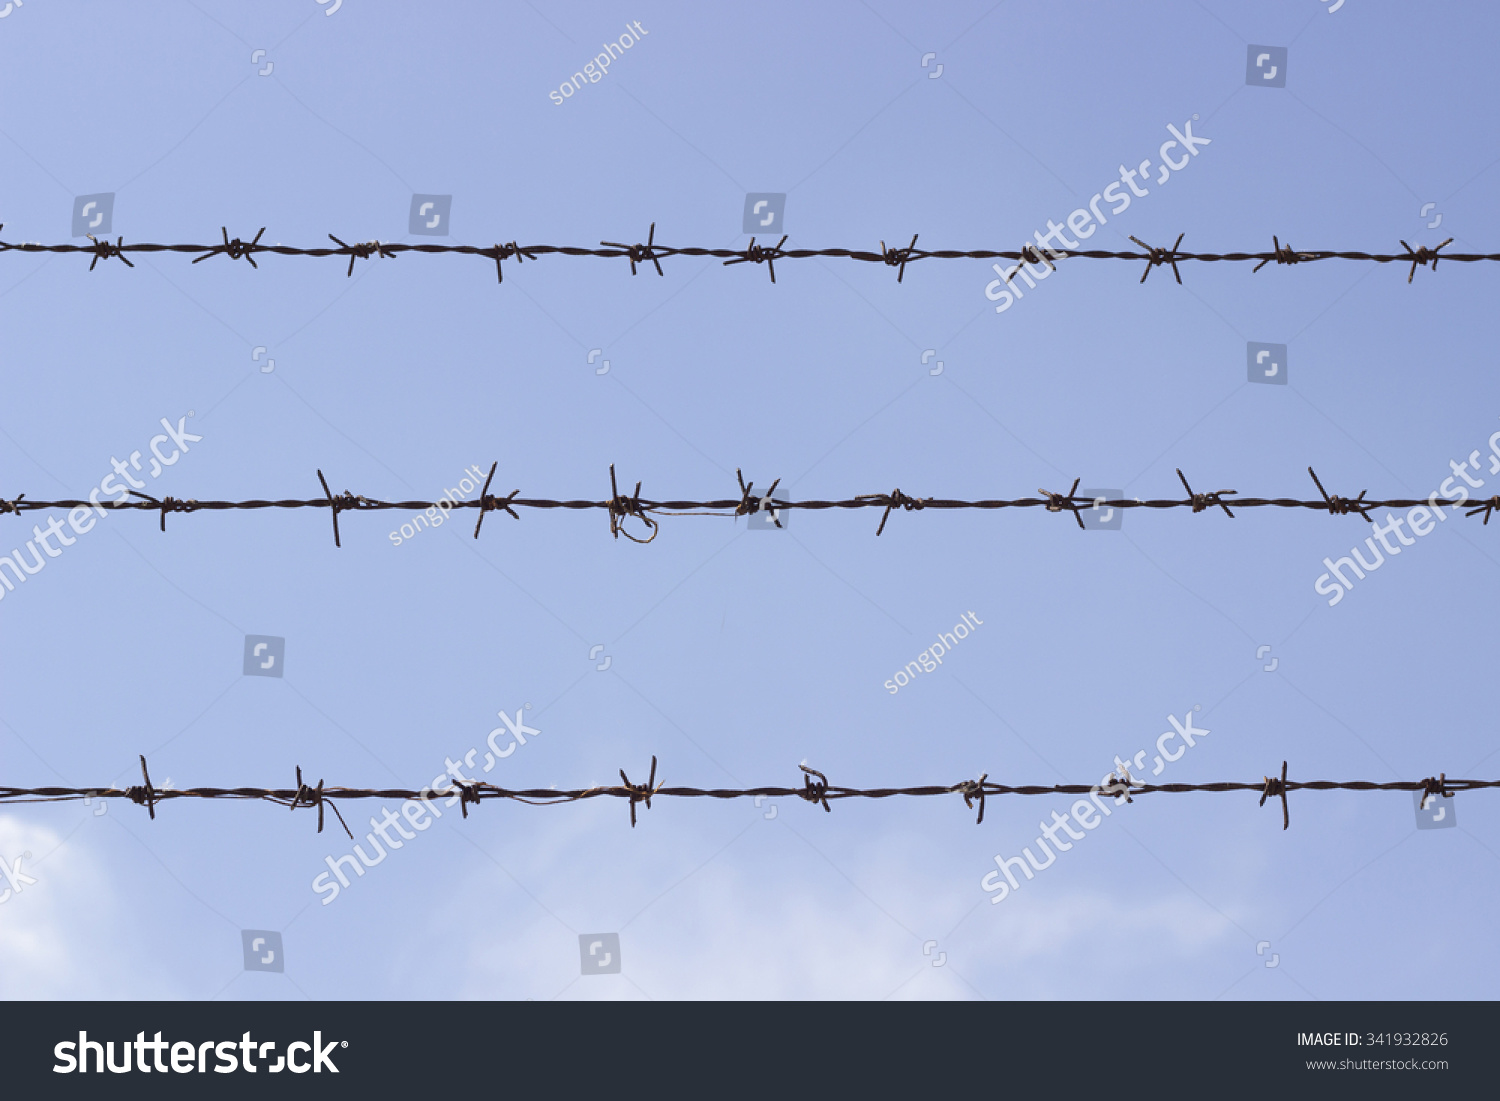 Uses Of Barb Wire : Barbed wire used block restricted areas stock photo